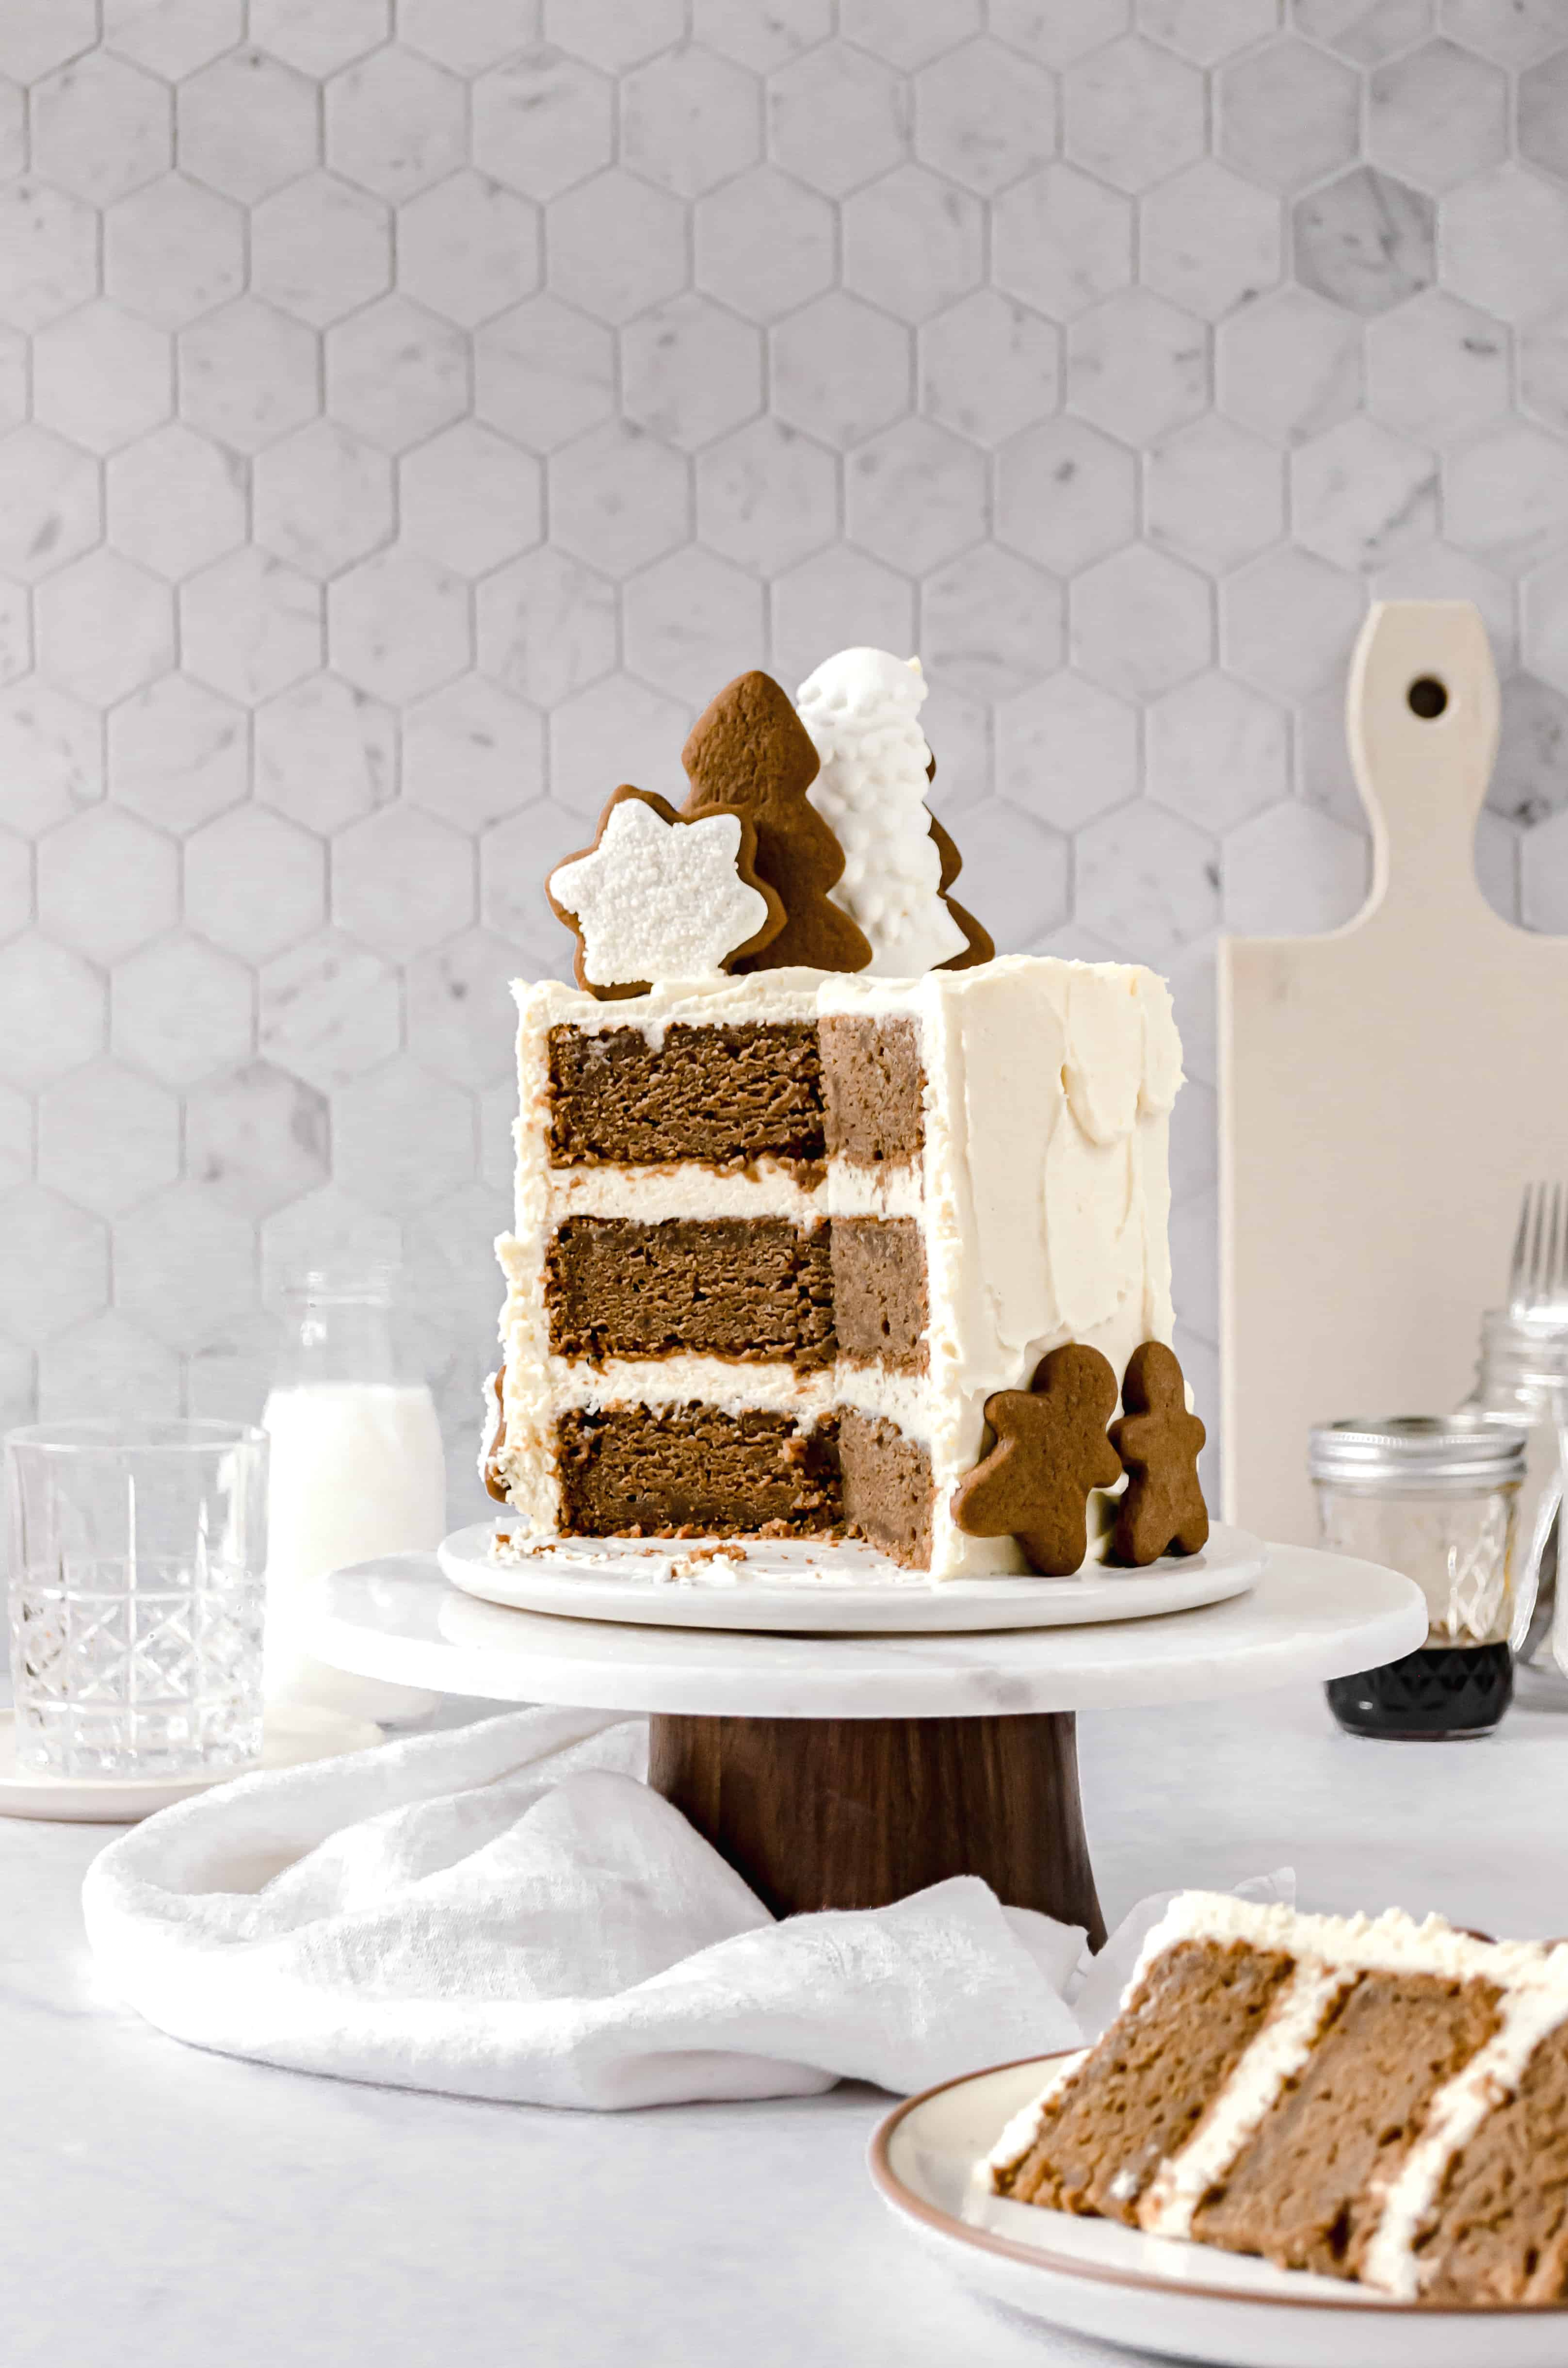 cut gingerbread layer cake on cake stand